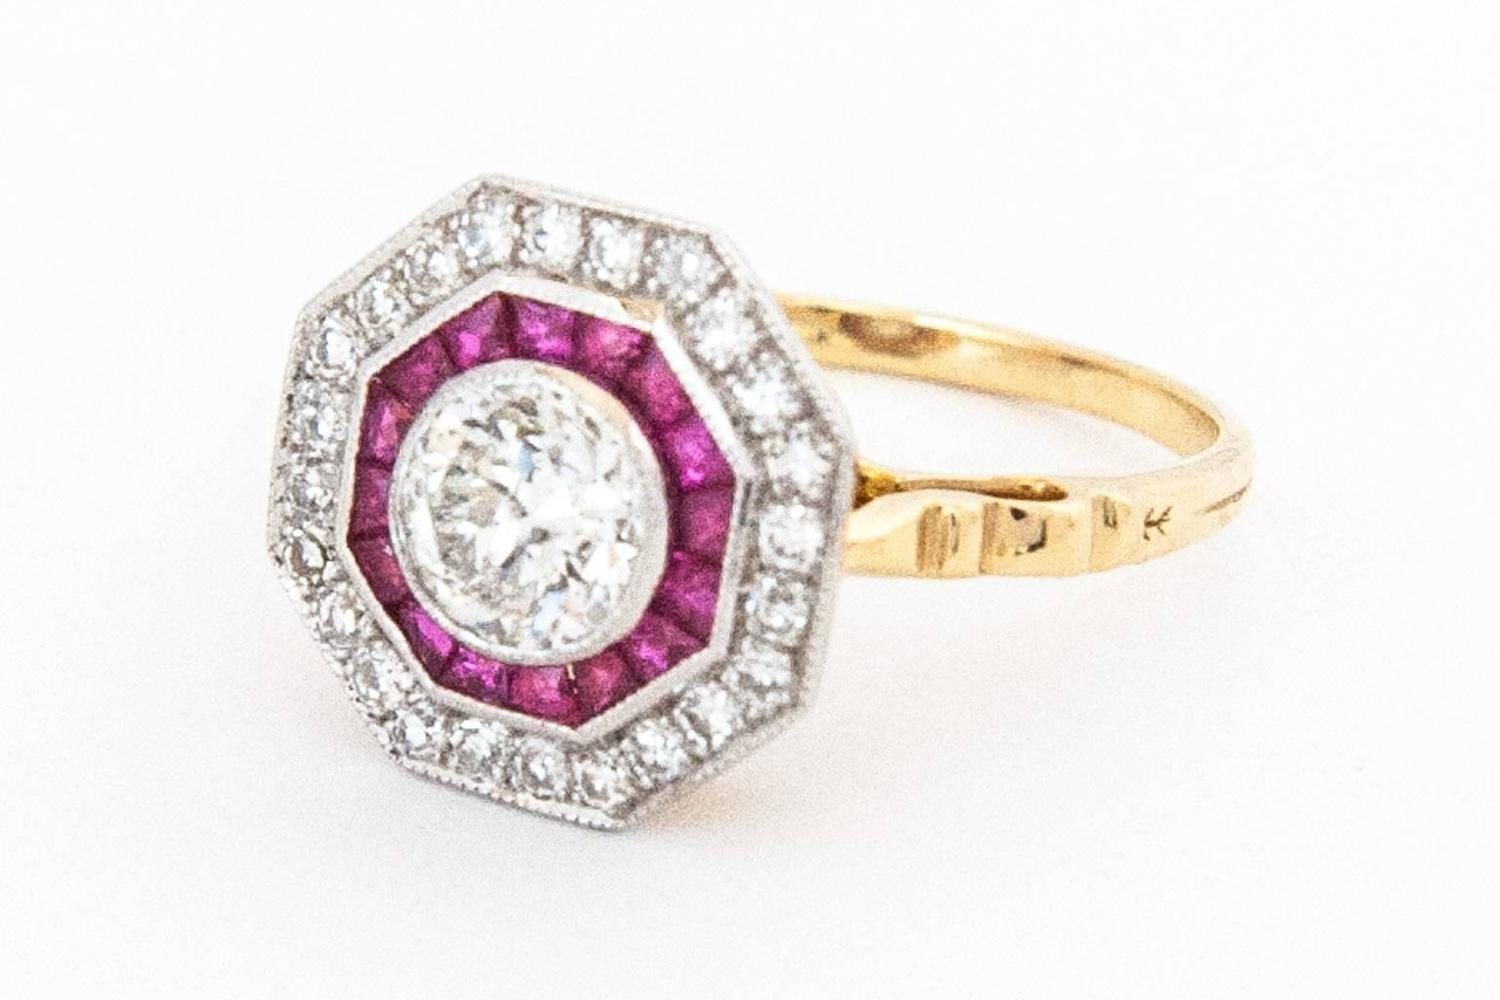 Ruby And Diamond Ring Gold Pinterest